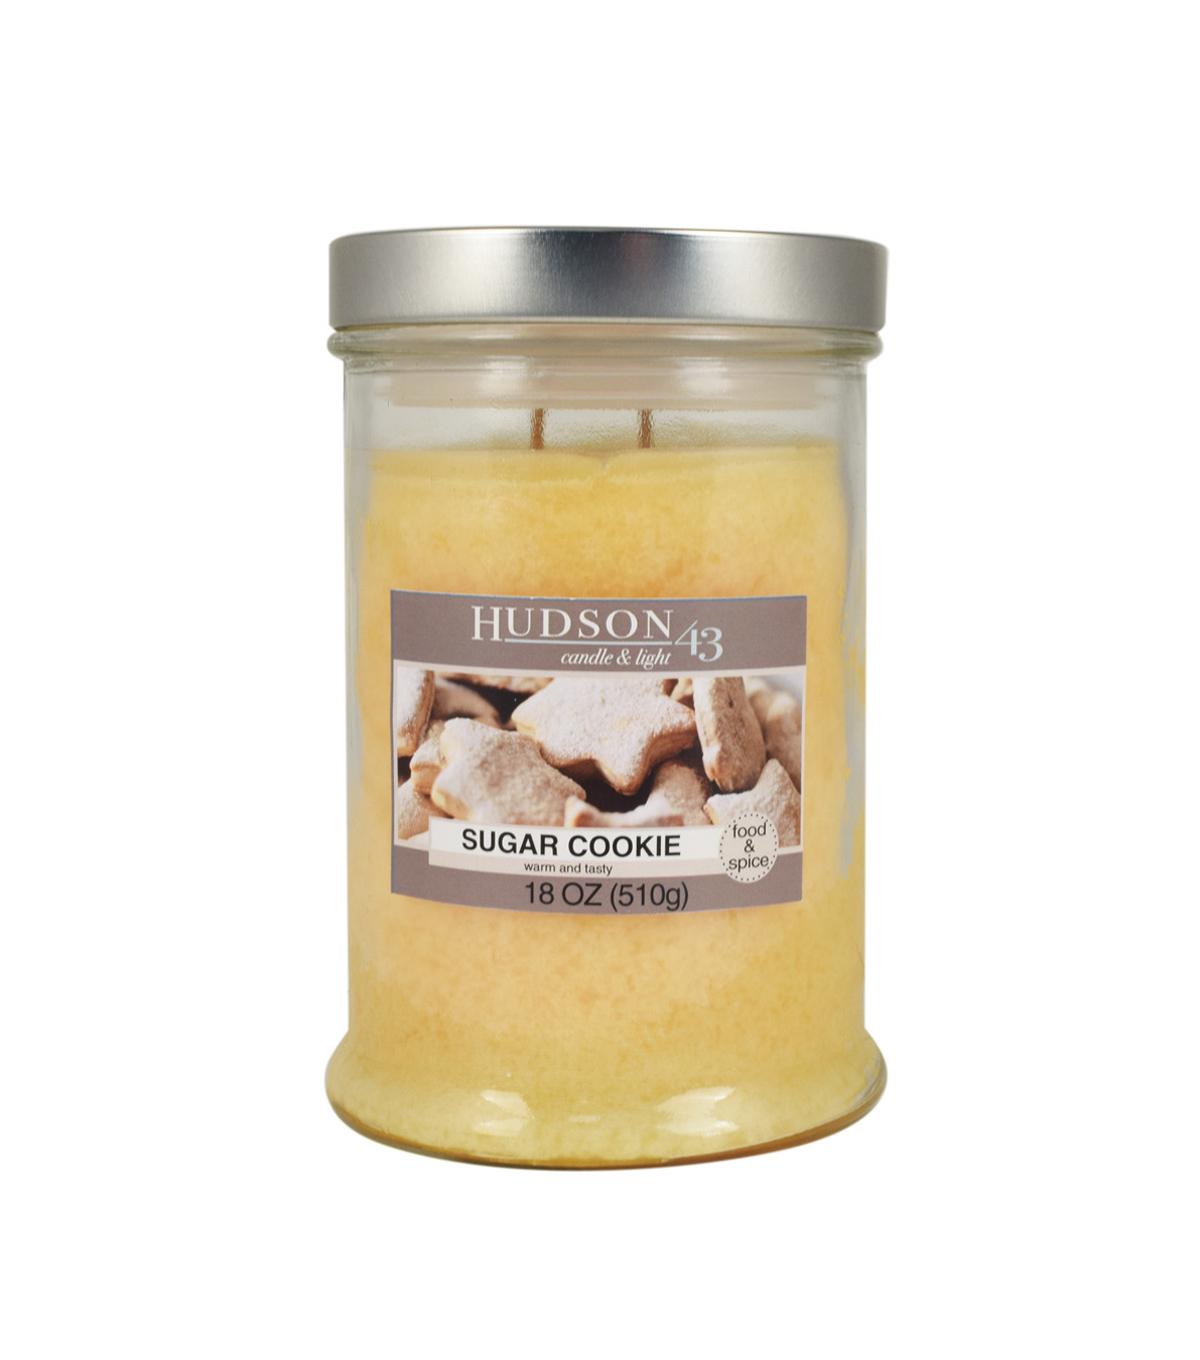 Hudson 43™ Candle & Light Collection 18oz Sugar Cookie Jar